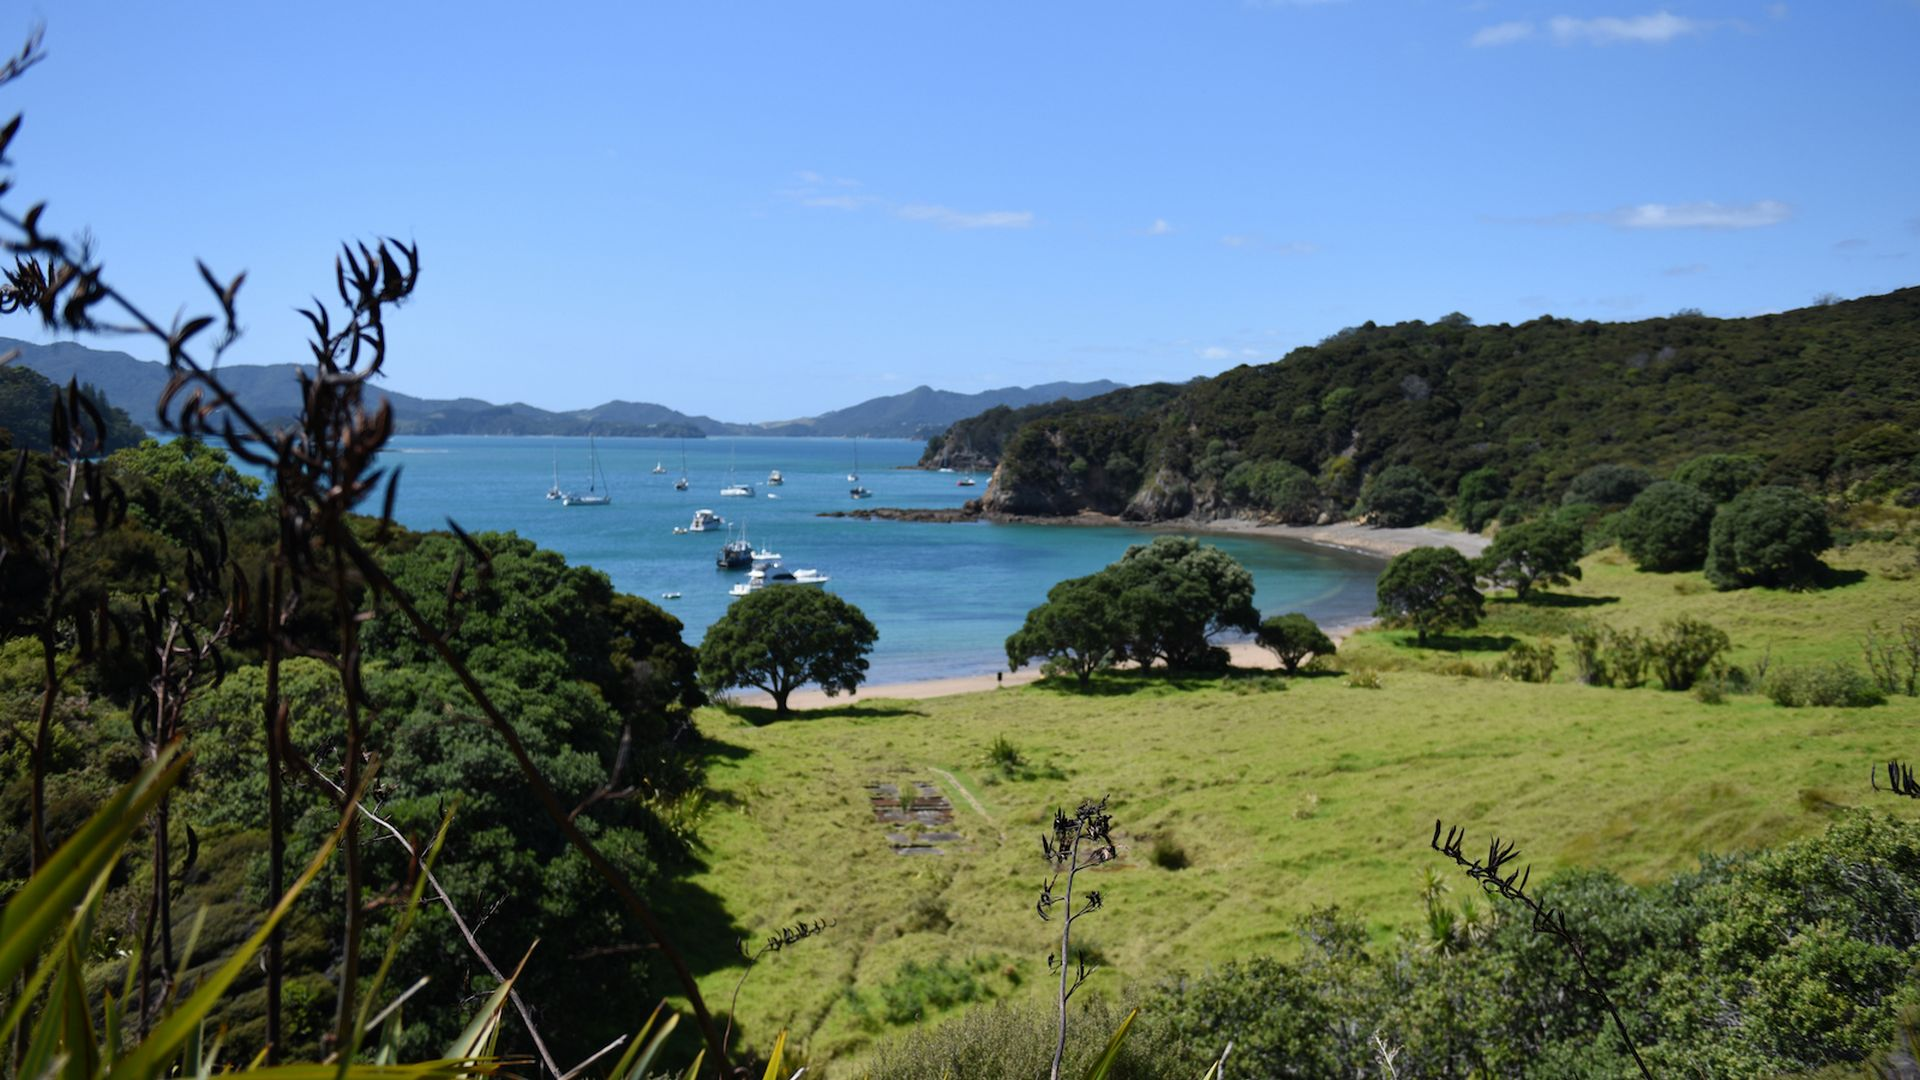 Stunning view at Palm beach, Bay of Islands together with The Rock Adventure Cruise